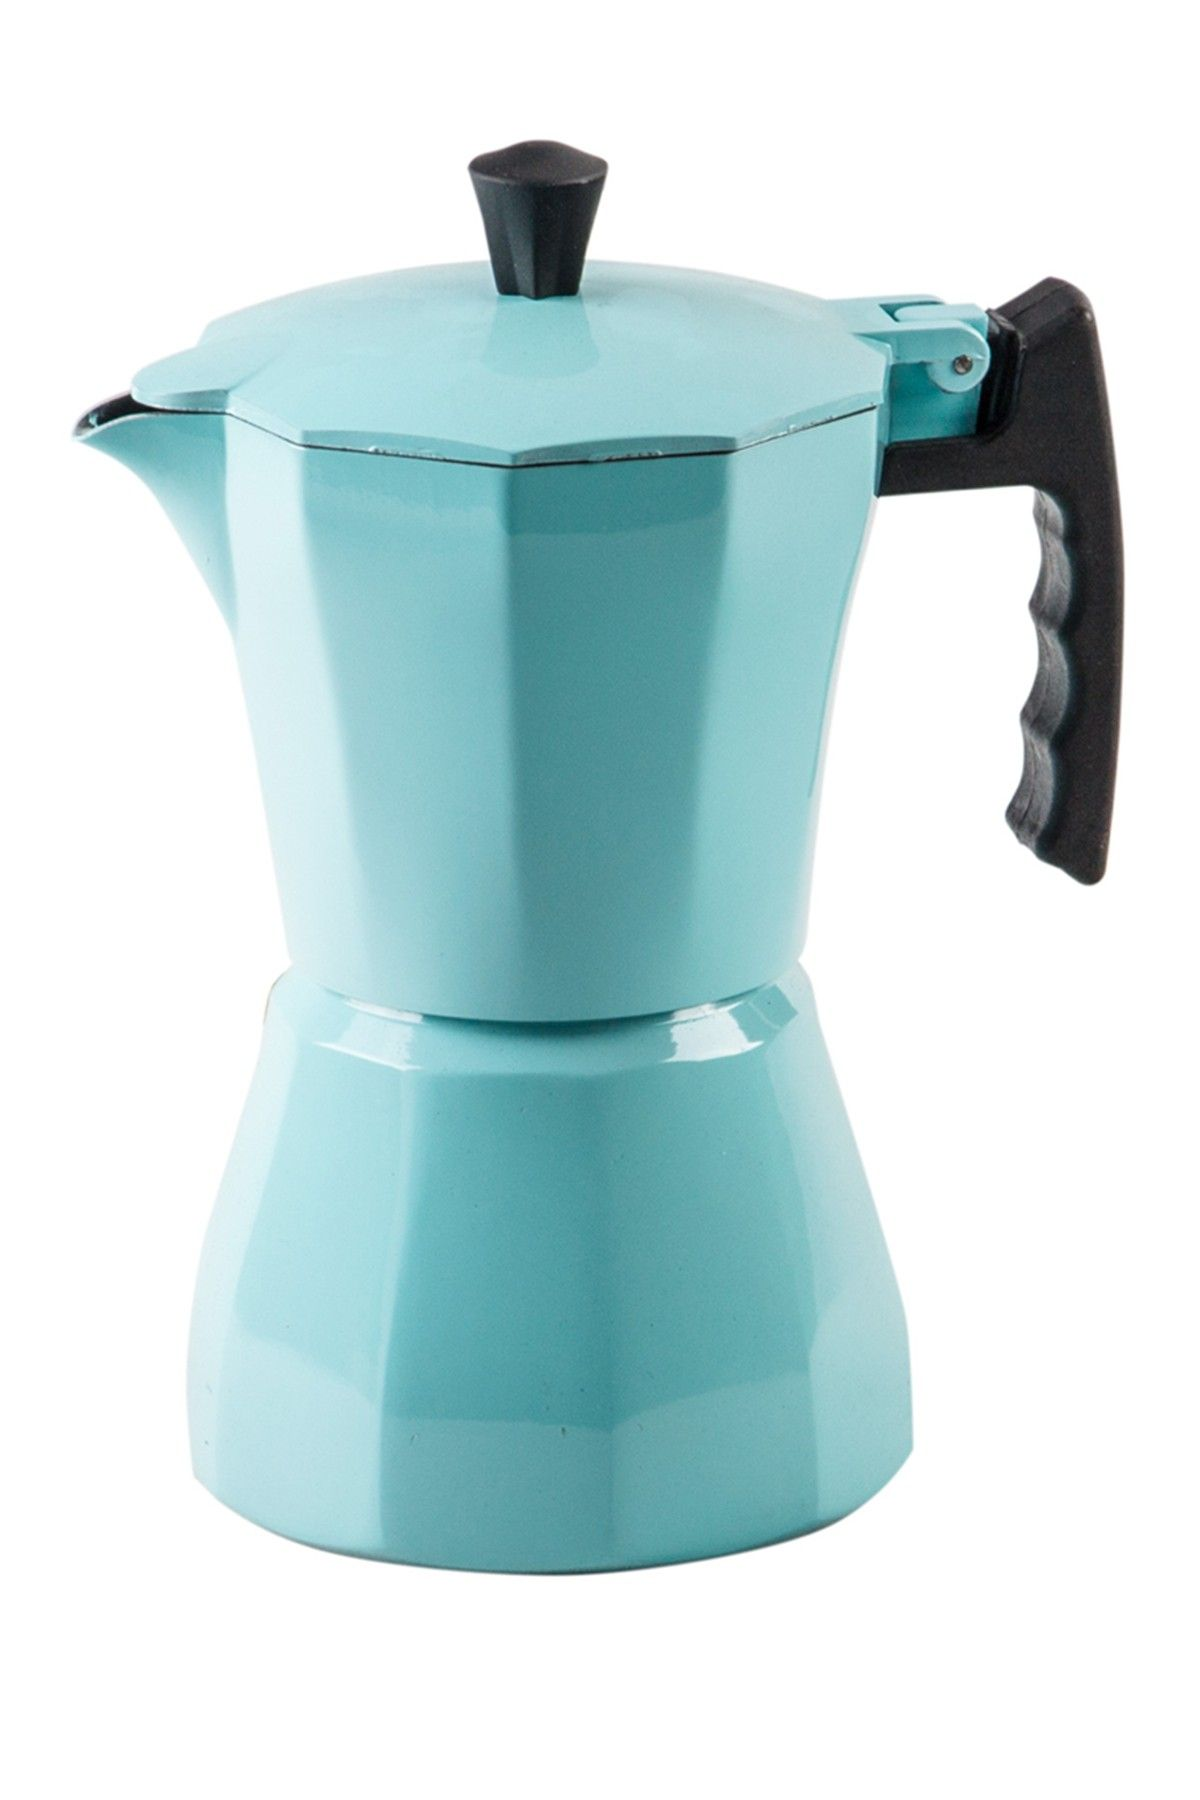 Home Essentials and Beyond | 3-Cup Turquoise Espresso Maker #espressomaker